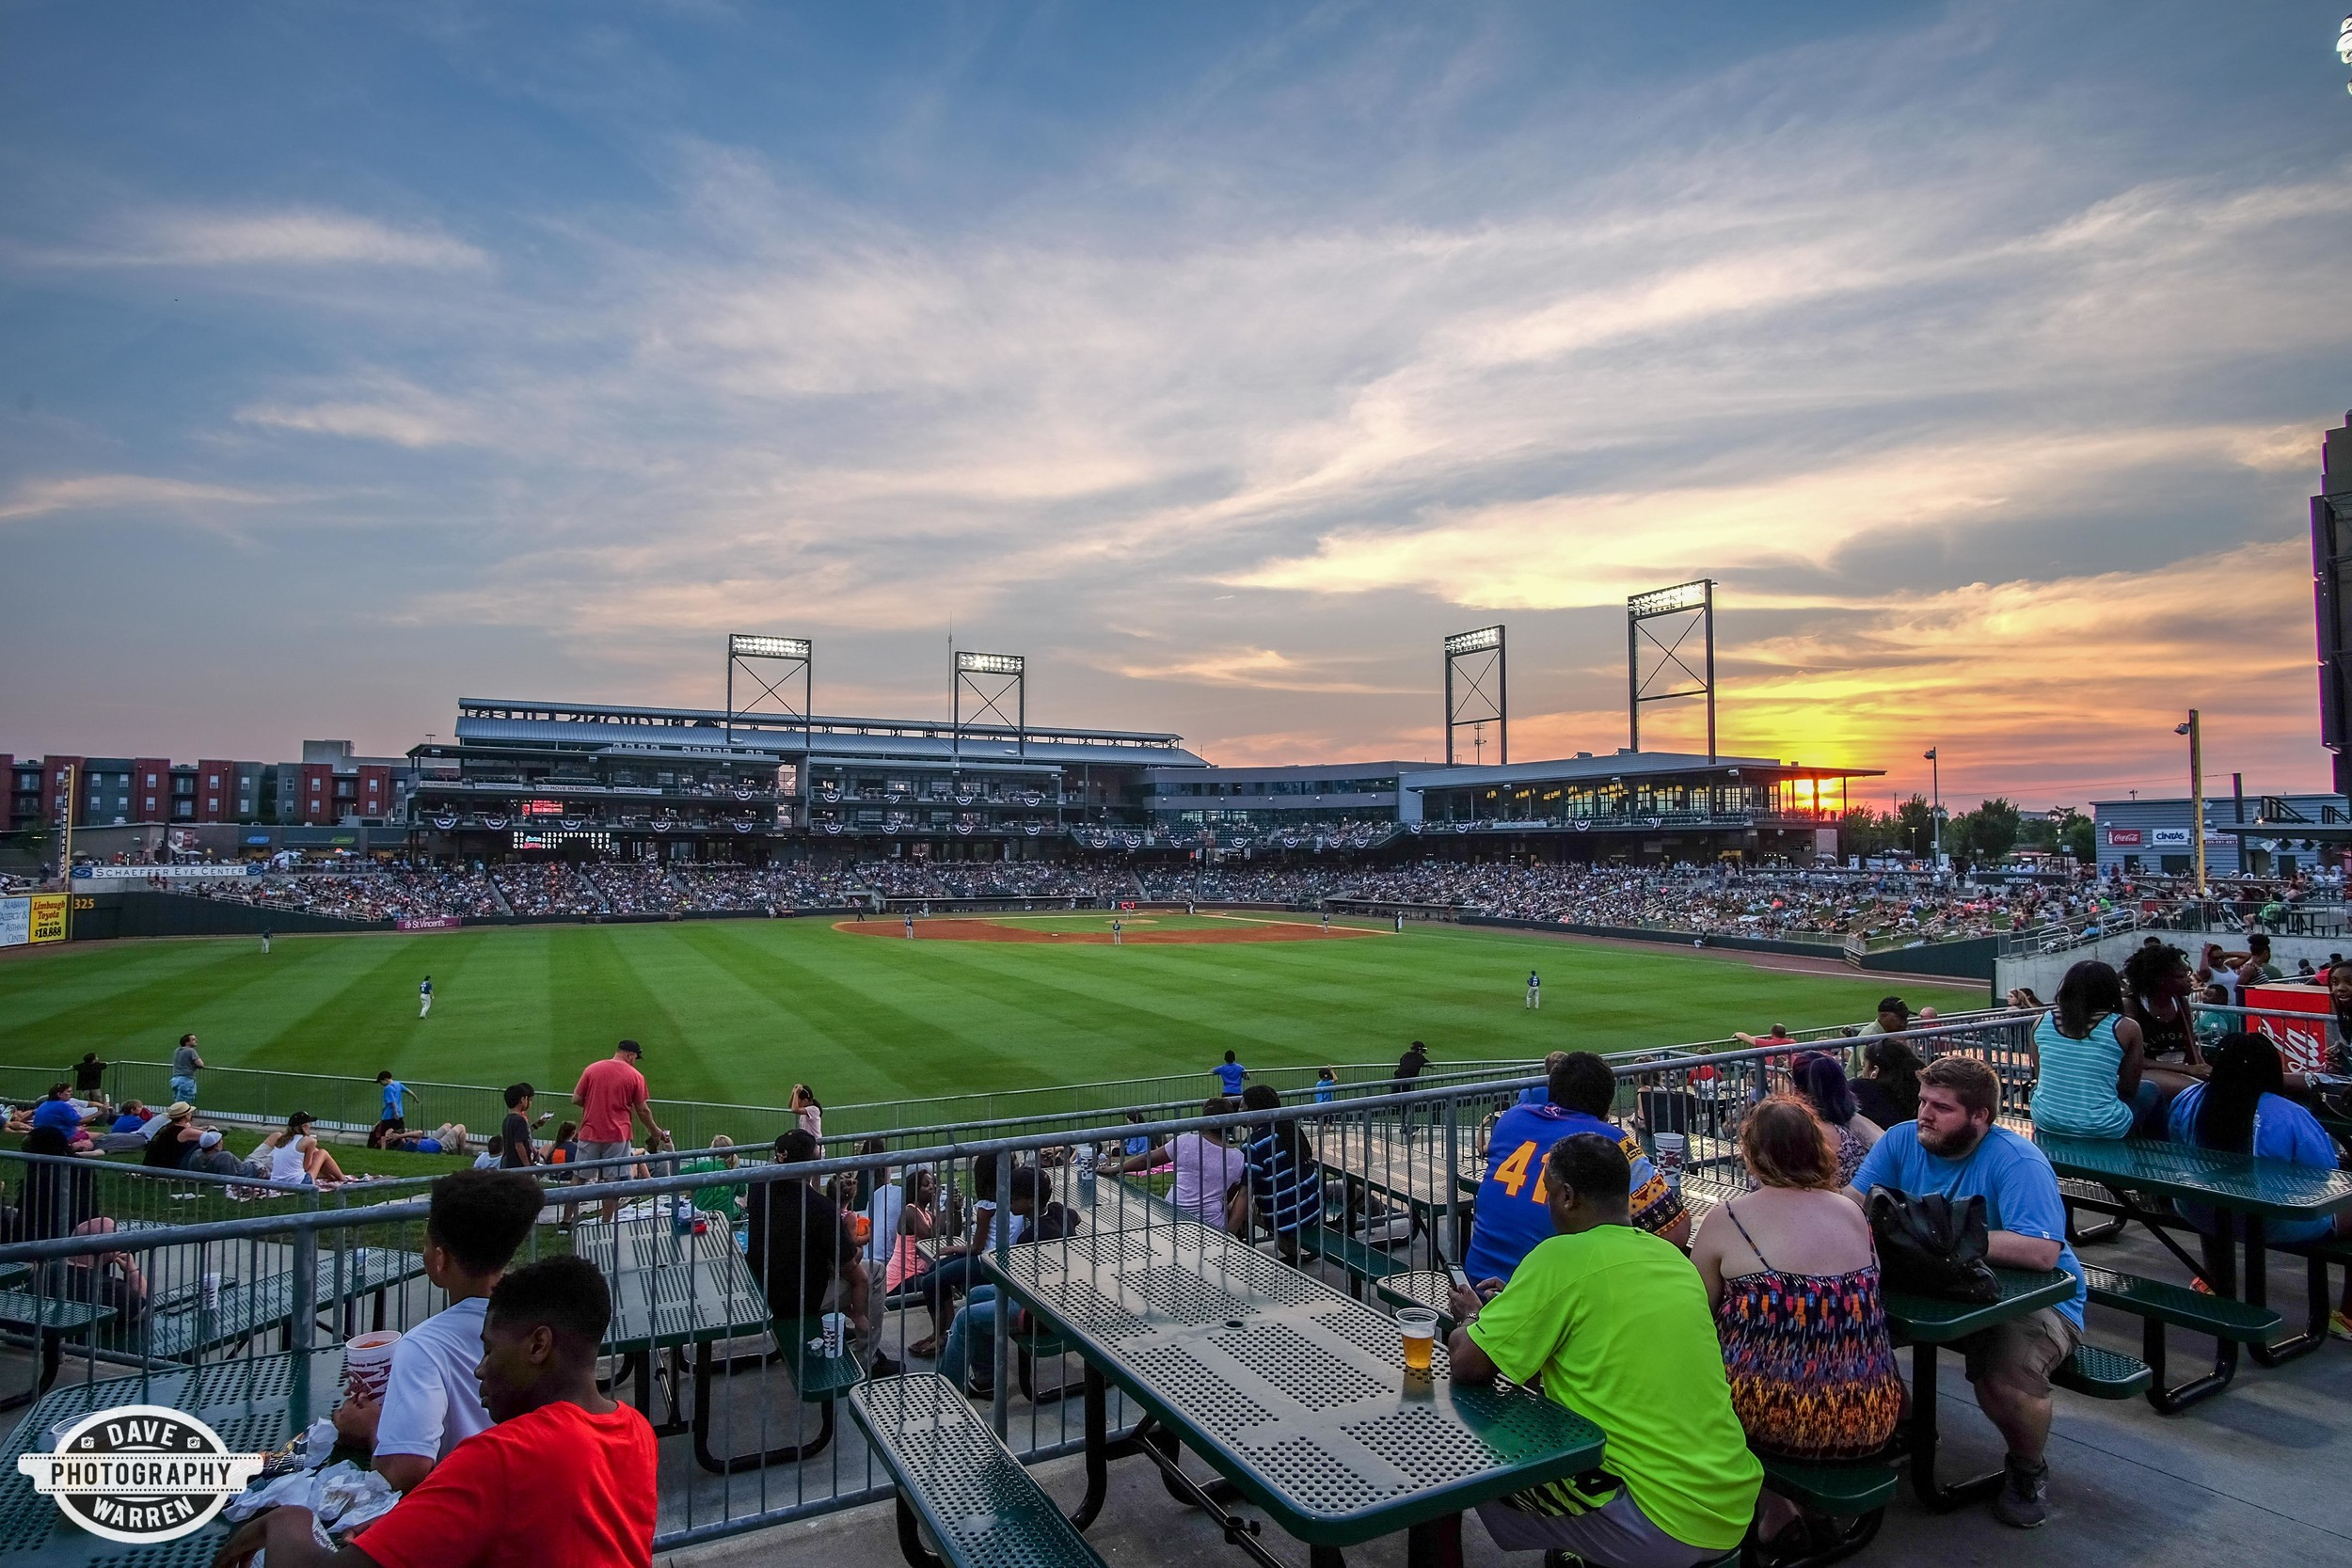 Sunset over the Birmingham Barons Game at Region's Park